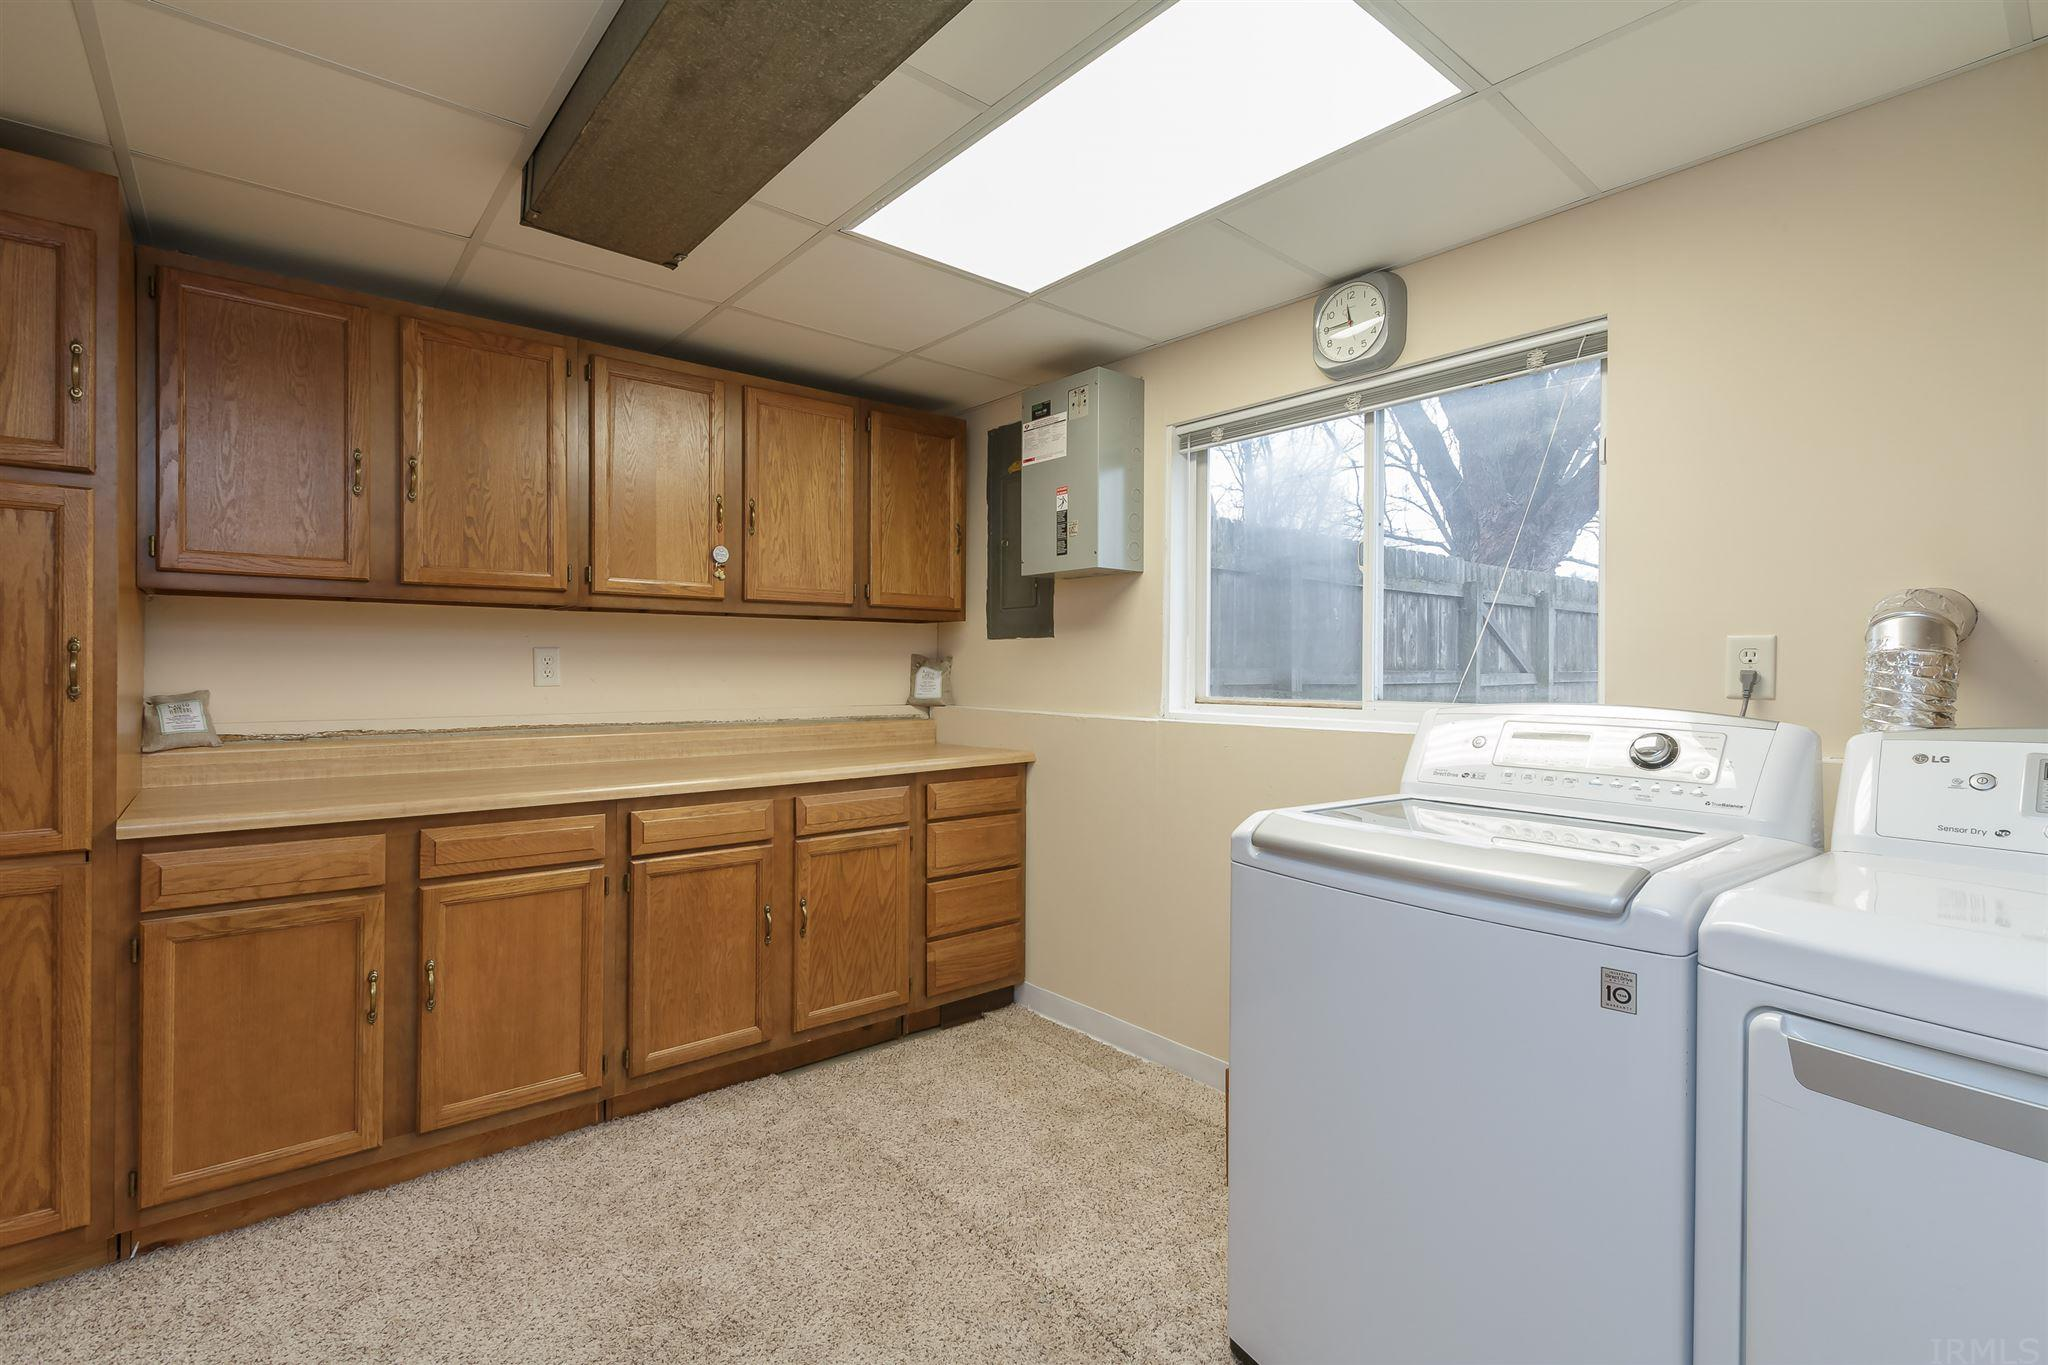 2054 Carrbridge, South Bend, IN 46614